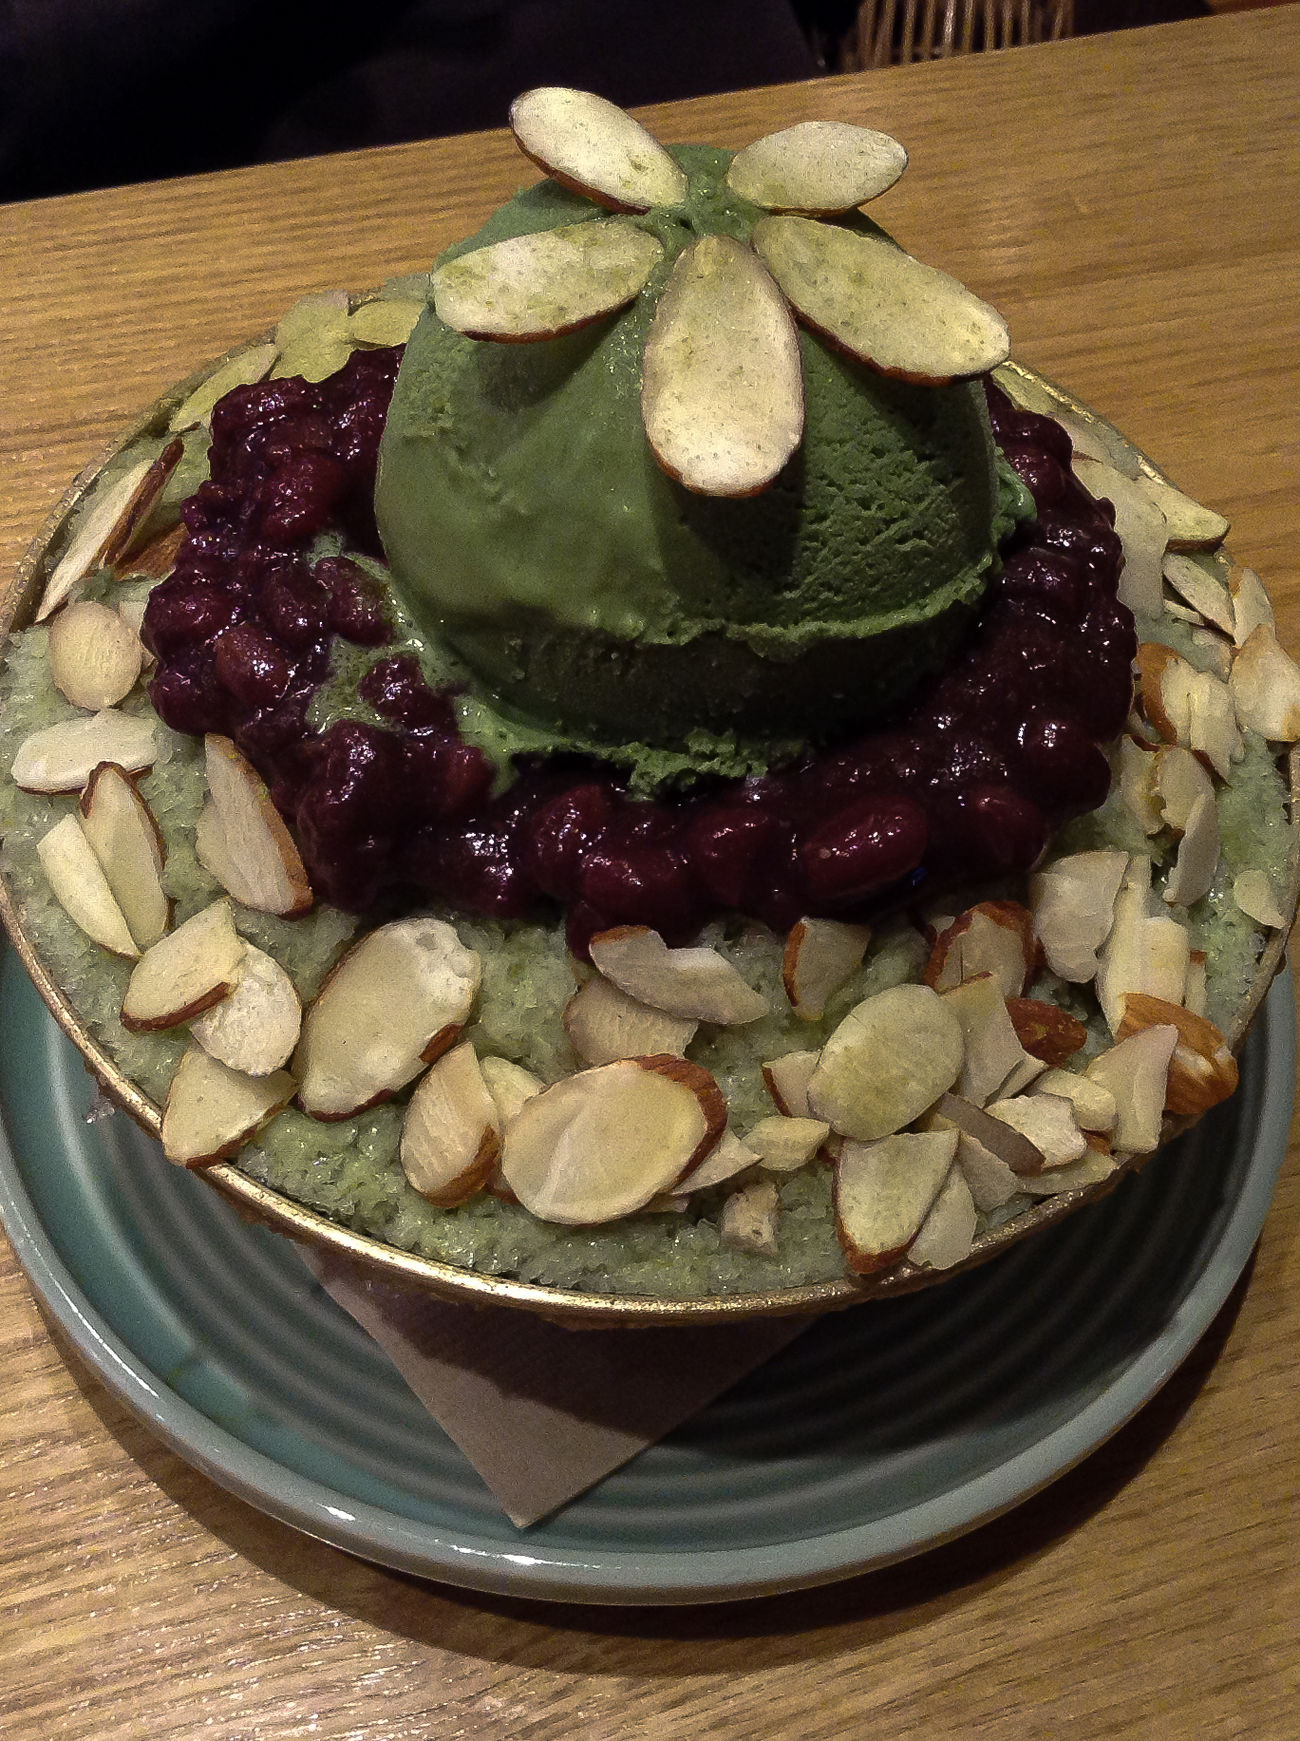 팥빙수 (patbingsoo) at cafe in Dongtan. Close-up Day Dessert Food Food And Drink Freshness Ice Cream Indoors  Korea No People Patbingsoo Pattern Ready-to-eat 팥빙수